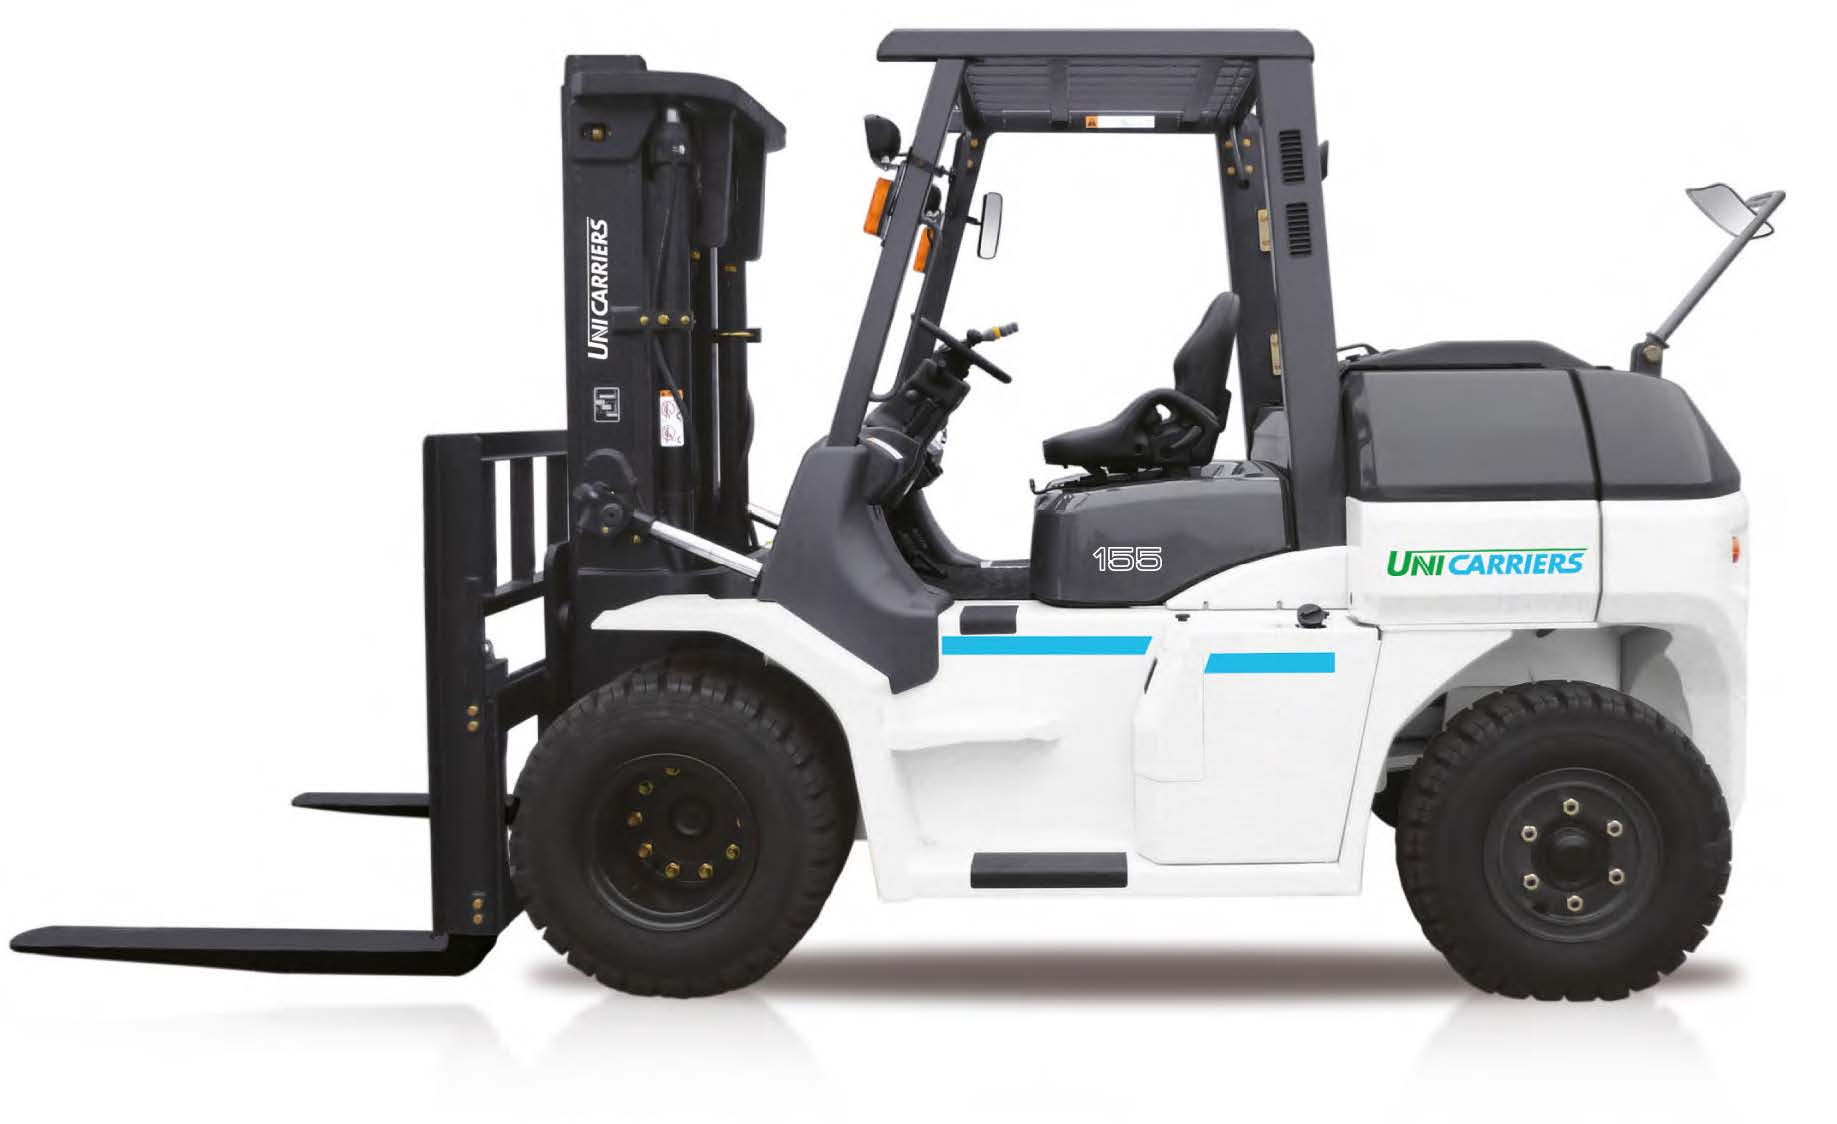 high capacity forklift, high capacity forklifts, heavy duty forklift, heavy duty forklifts, big forklifts, large forklifts